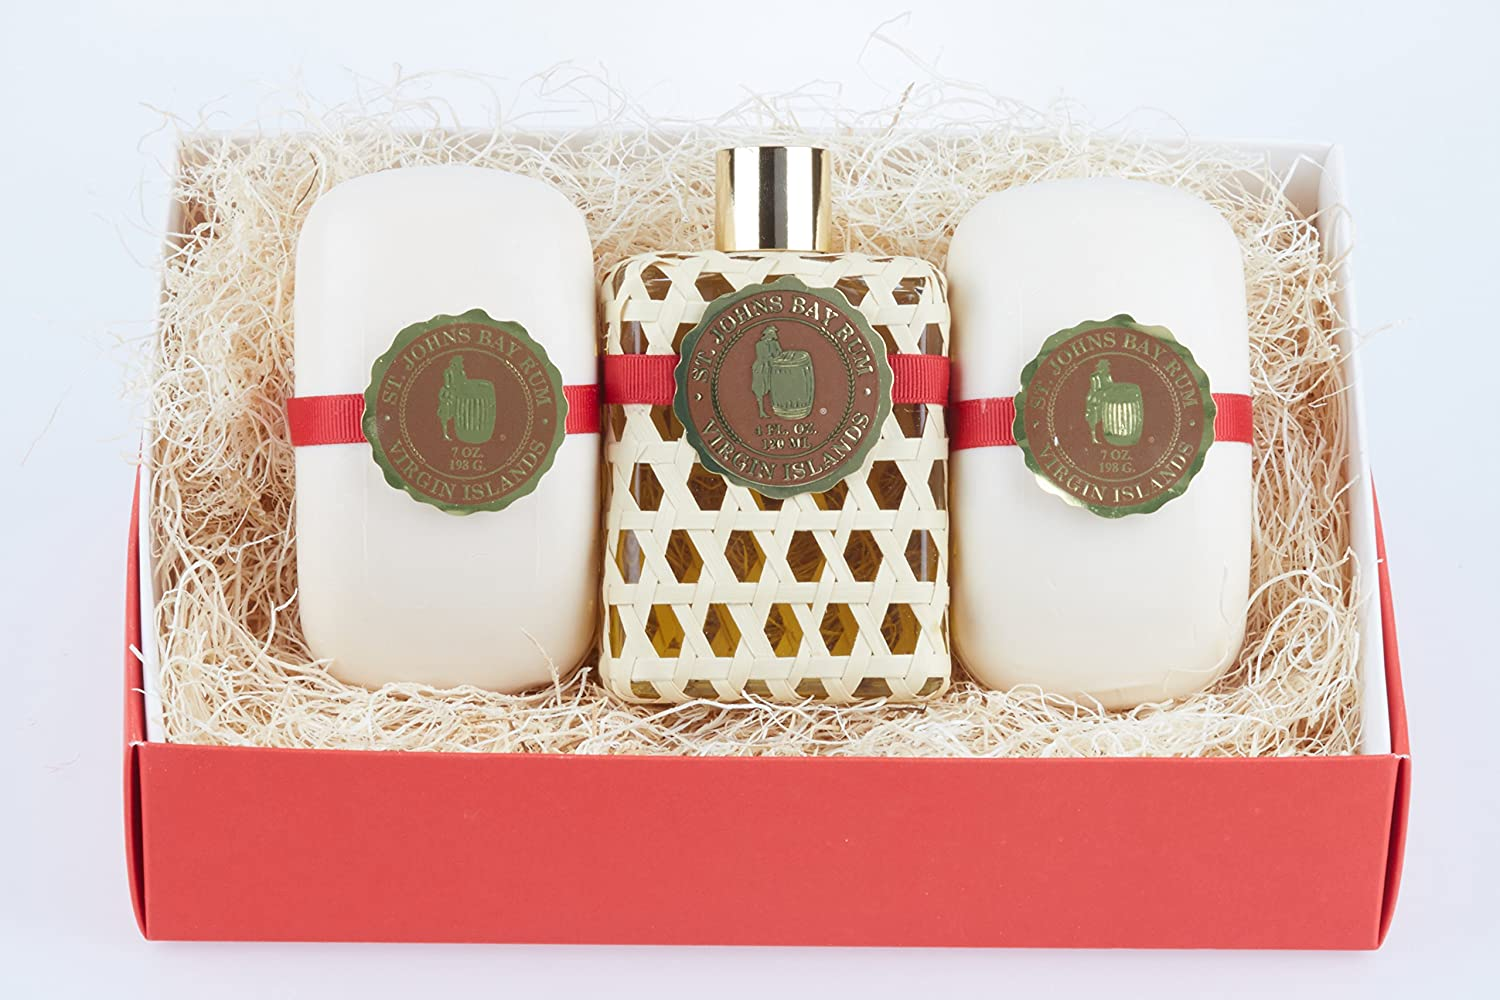 Bay Rum by St Johns 3 Piece Mens Gift Set. One 4 Oz Bay Rum Aftershave Splash/Cologne and 2 Bay Rum Luxury Bath Soap Bars For Men. Handcrafted in U.S.V.I with Premium Bay Leaf Oils, Caribbean Spice.